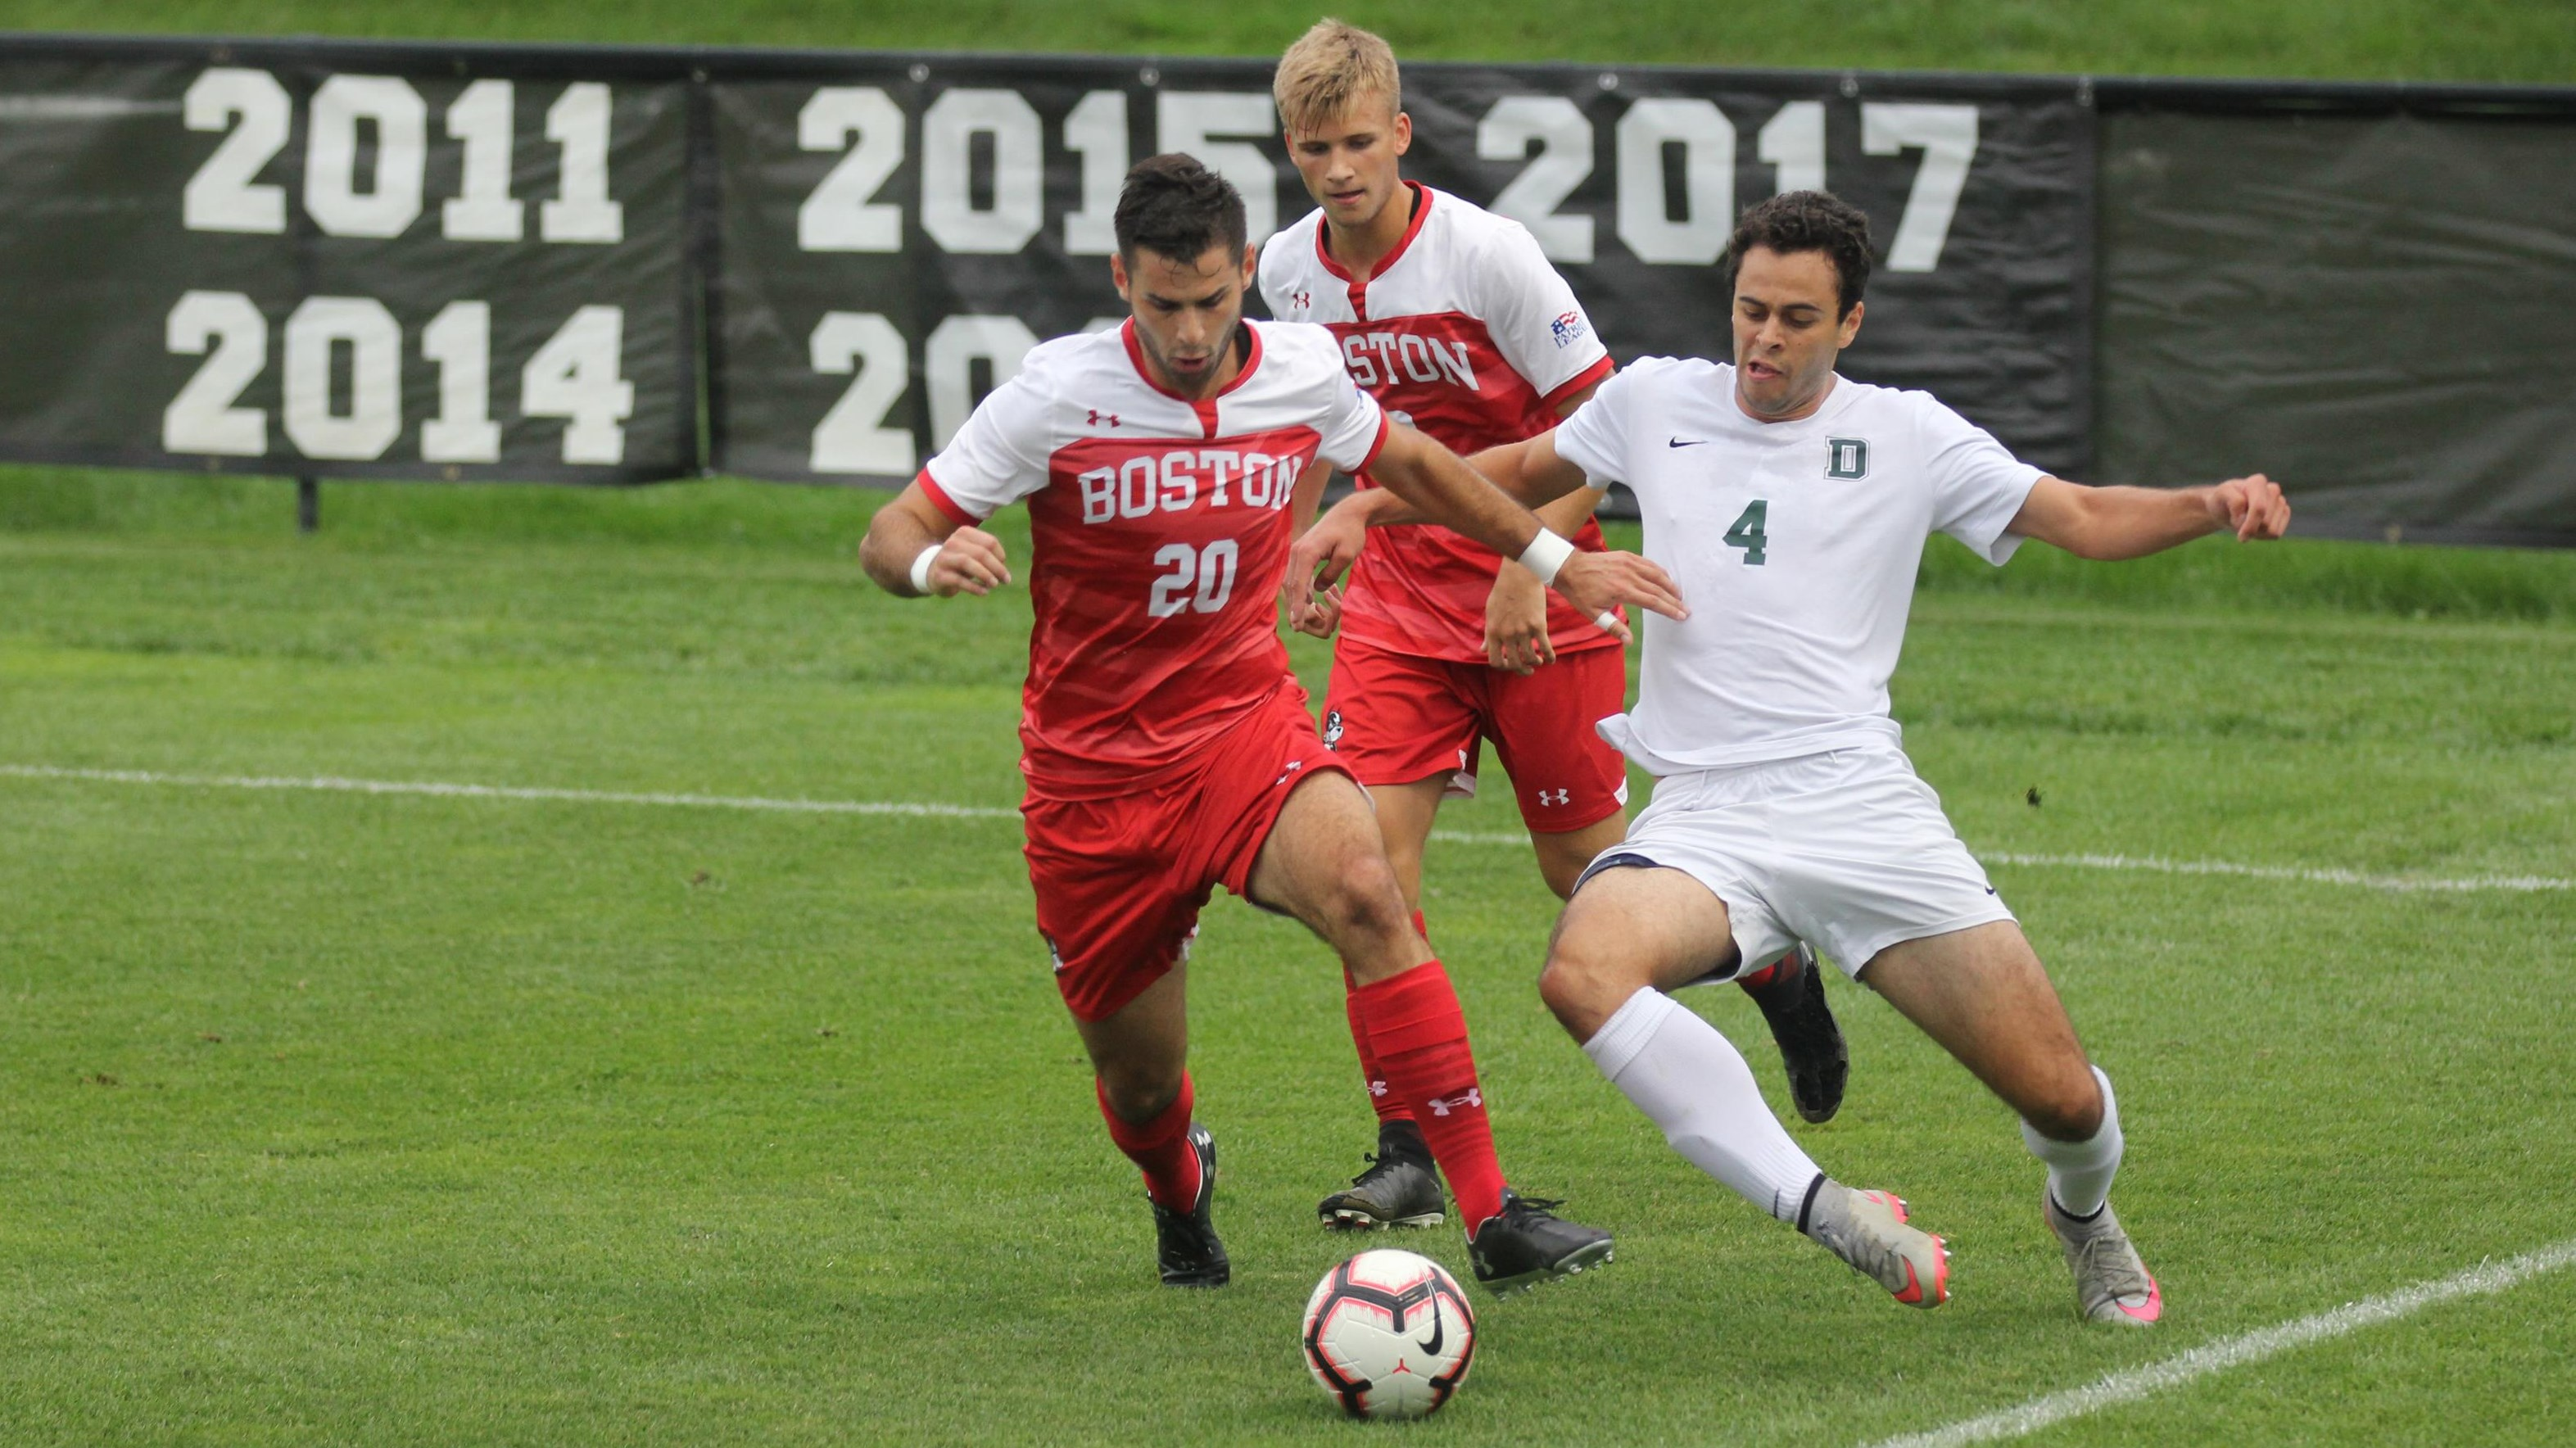 Josh Barkoff gets past a Dartmouth player for possession of the ball with Max Aunger right behind them.